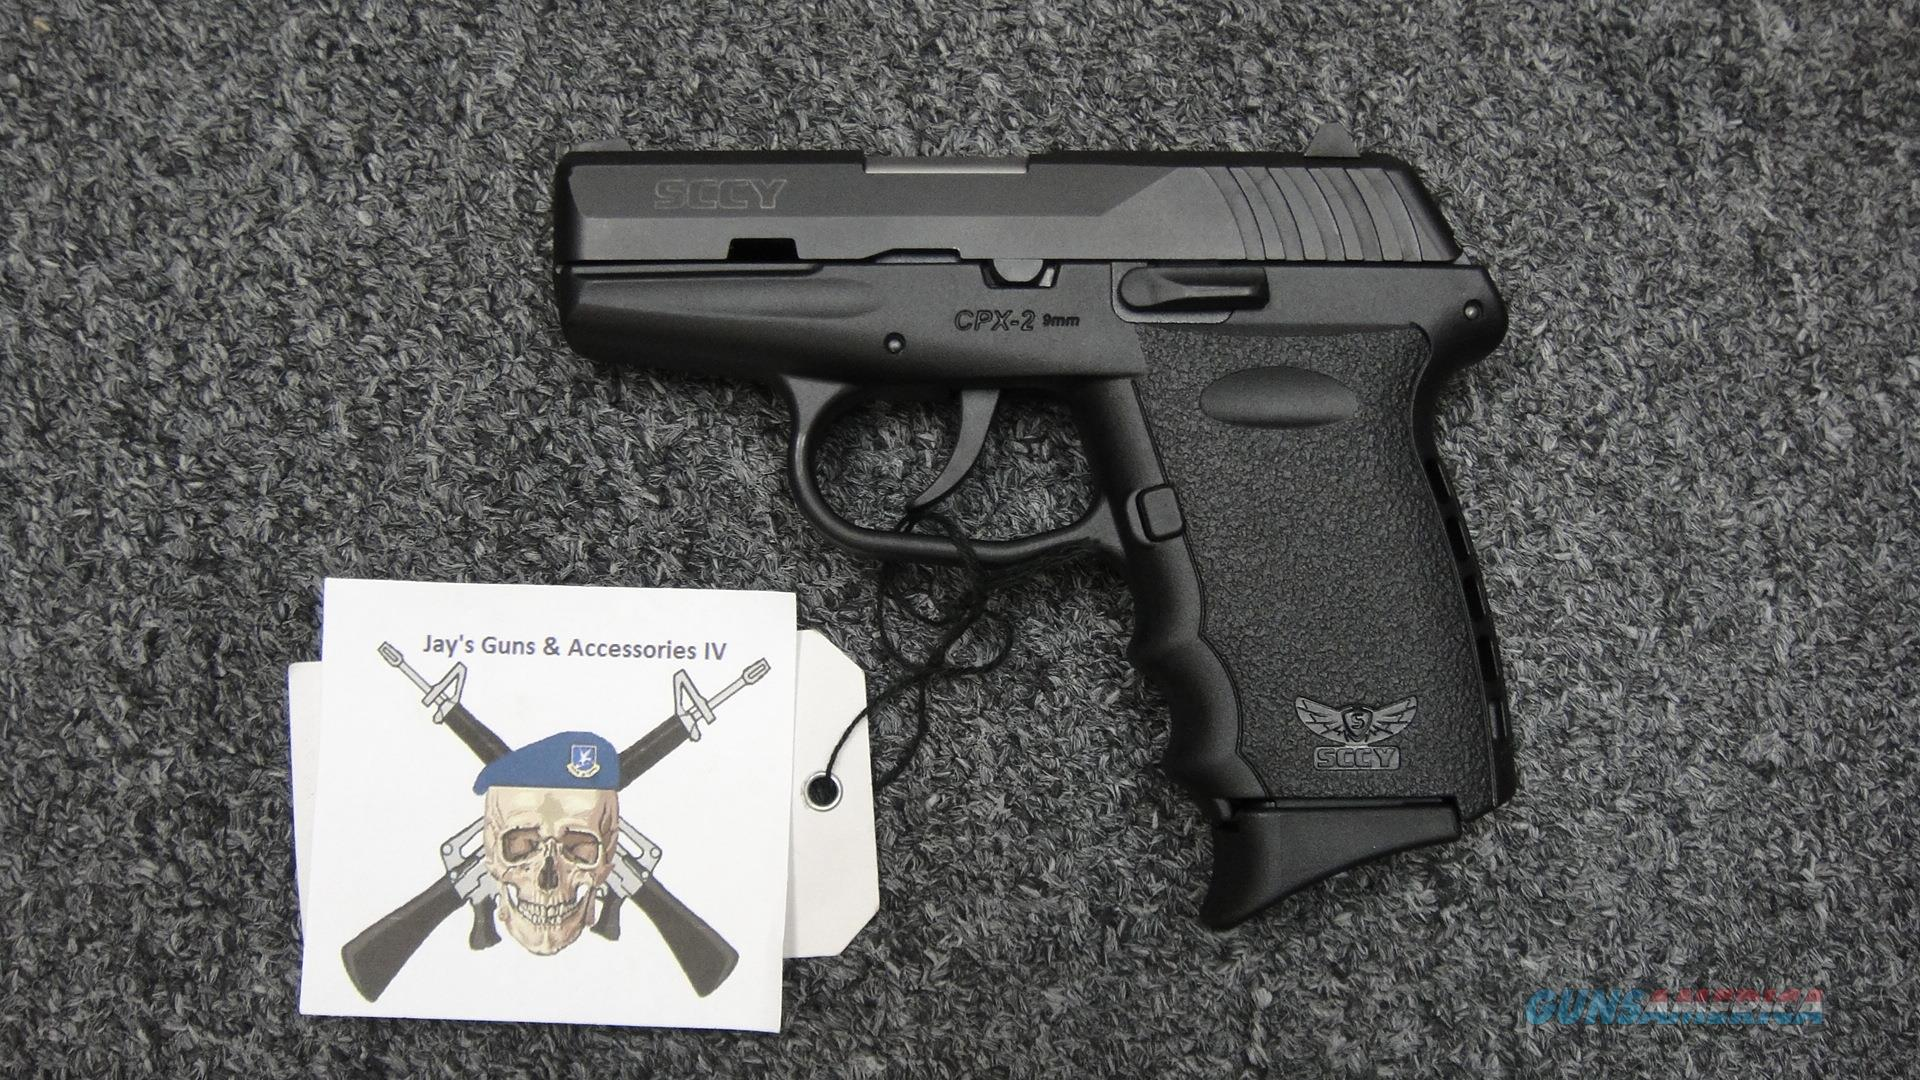 SCCY CPX2 9mm Black  Guns > Pistols > SCCY Pistols > CPX2